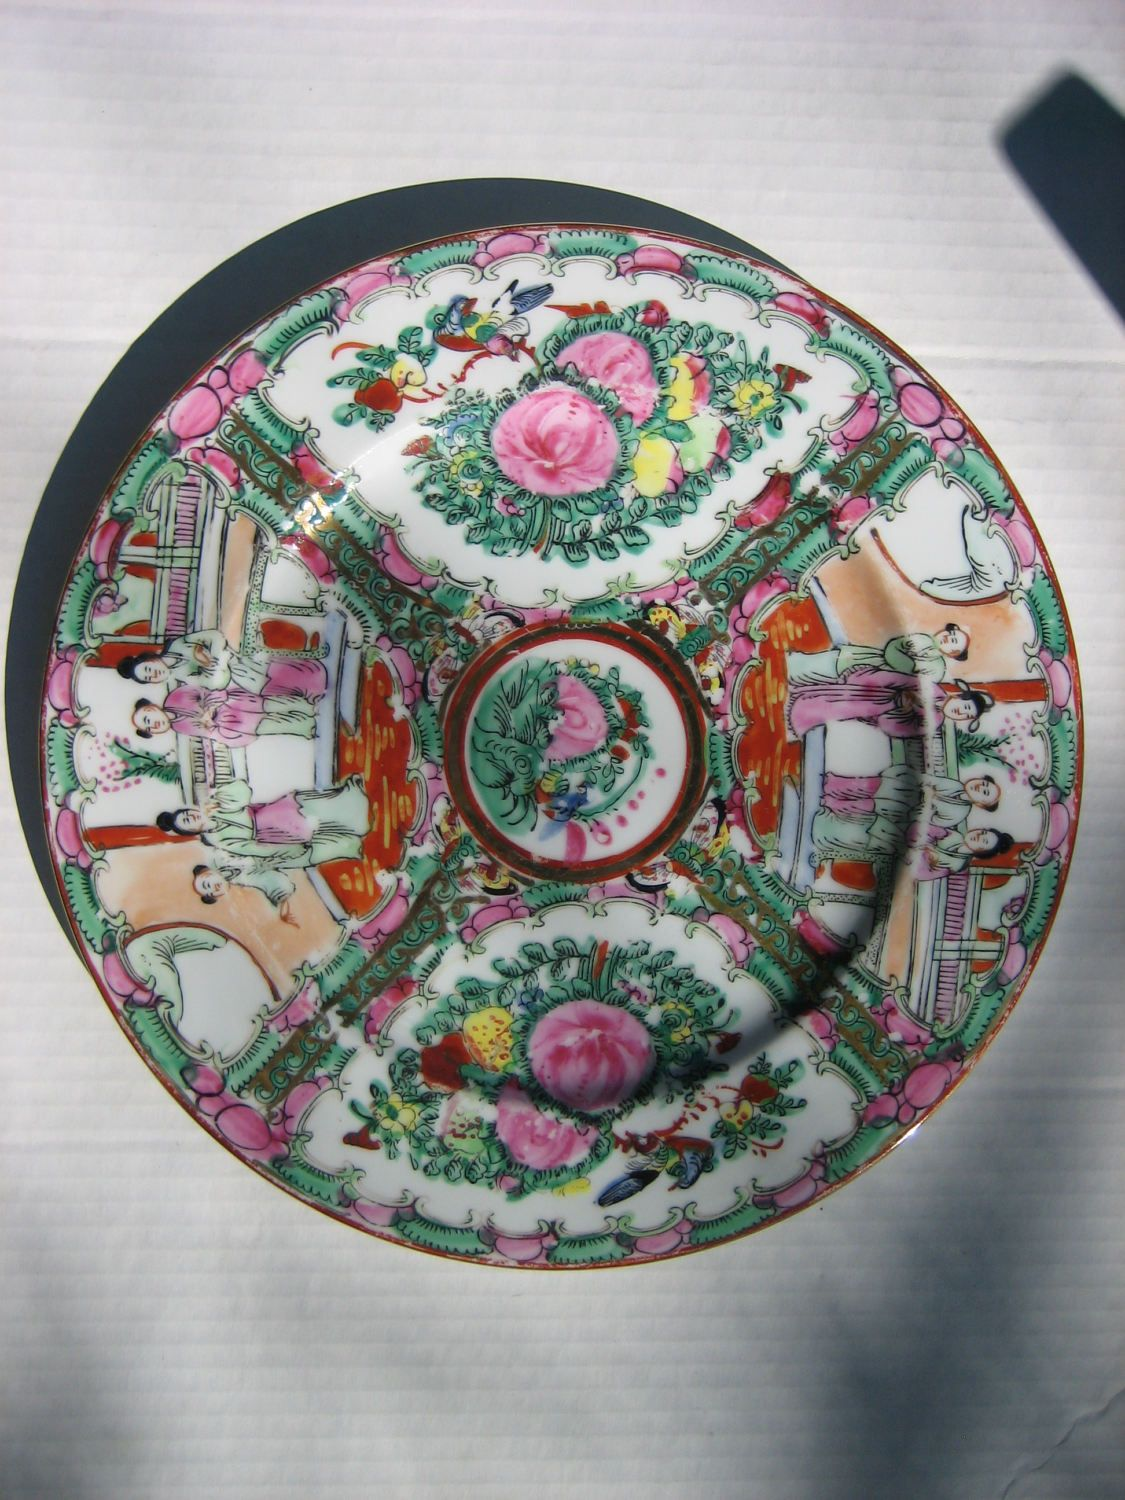 Vintage Chinese Famille Rose Medallion Porcelain Export Multi-Colored Hand-Painted Decorative Plate w & Vintage Chinese Famille Rose Medallion Porcelain Export Multi ...